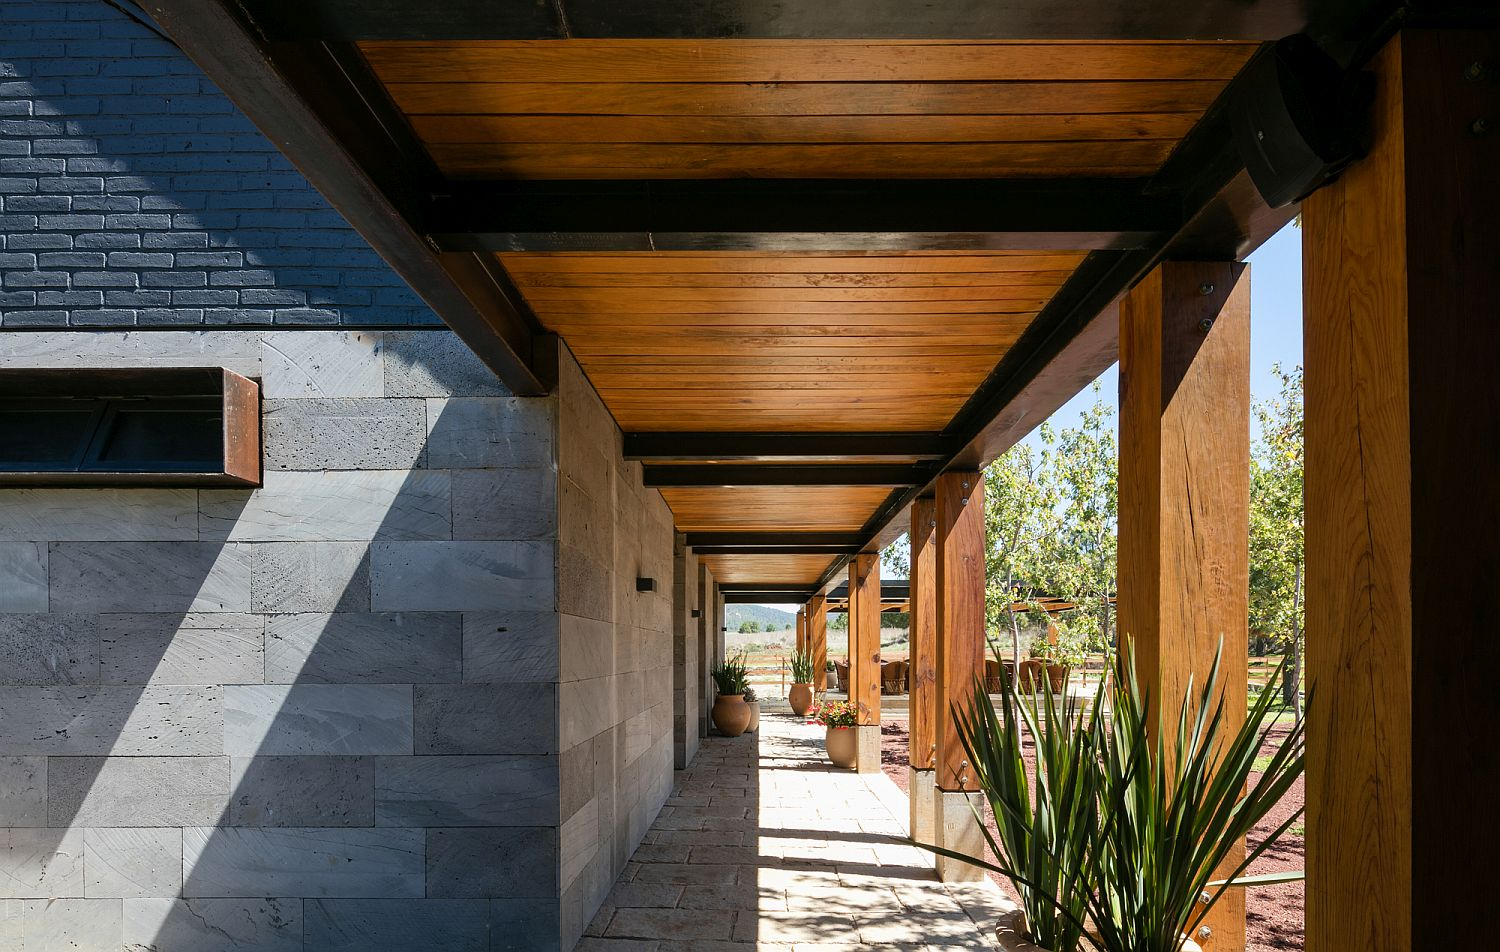 Cut-volcanic-rock-and-wood-combined-at-the-lovely-ranch-house